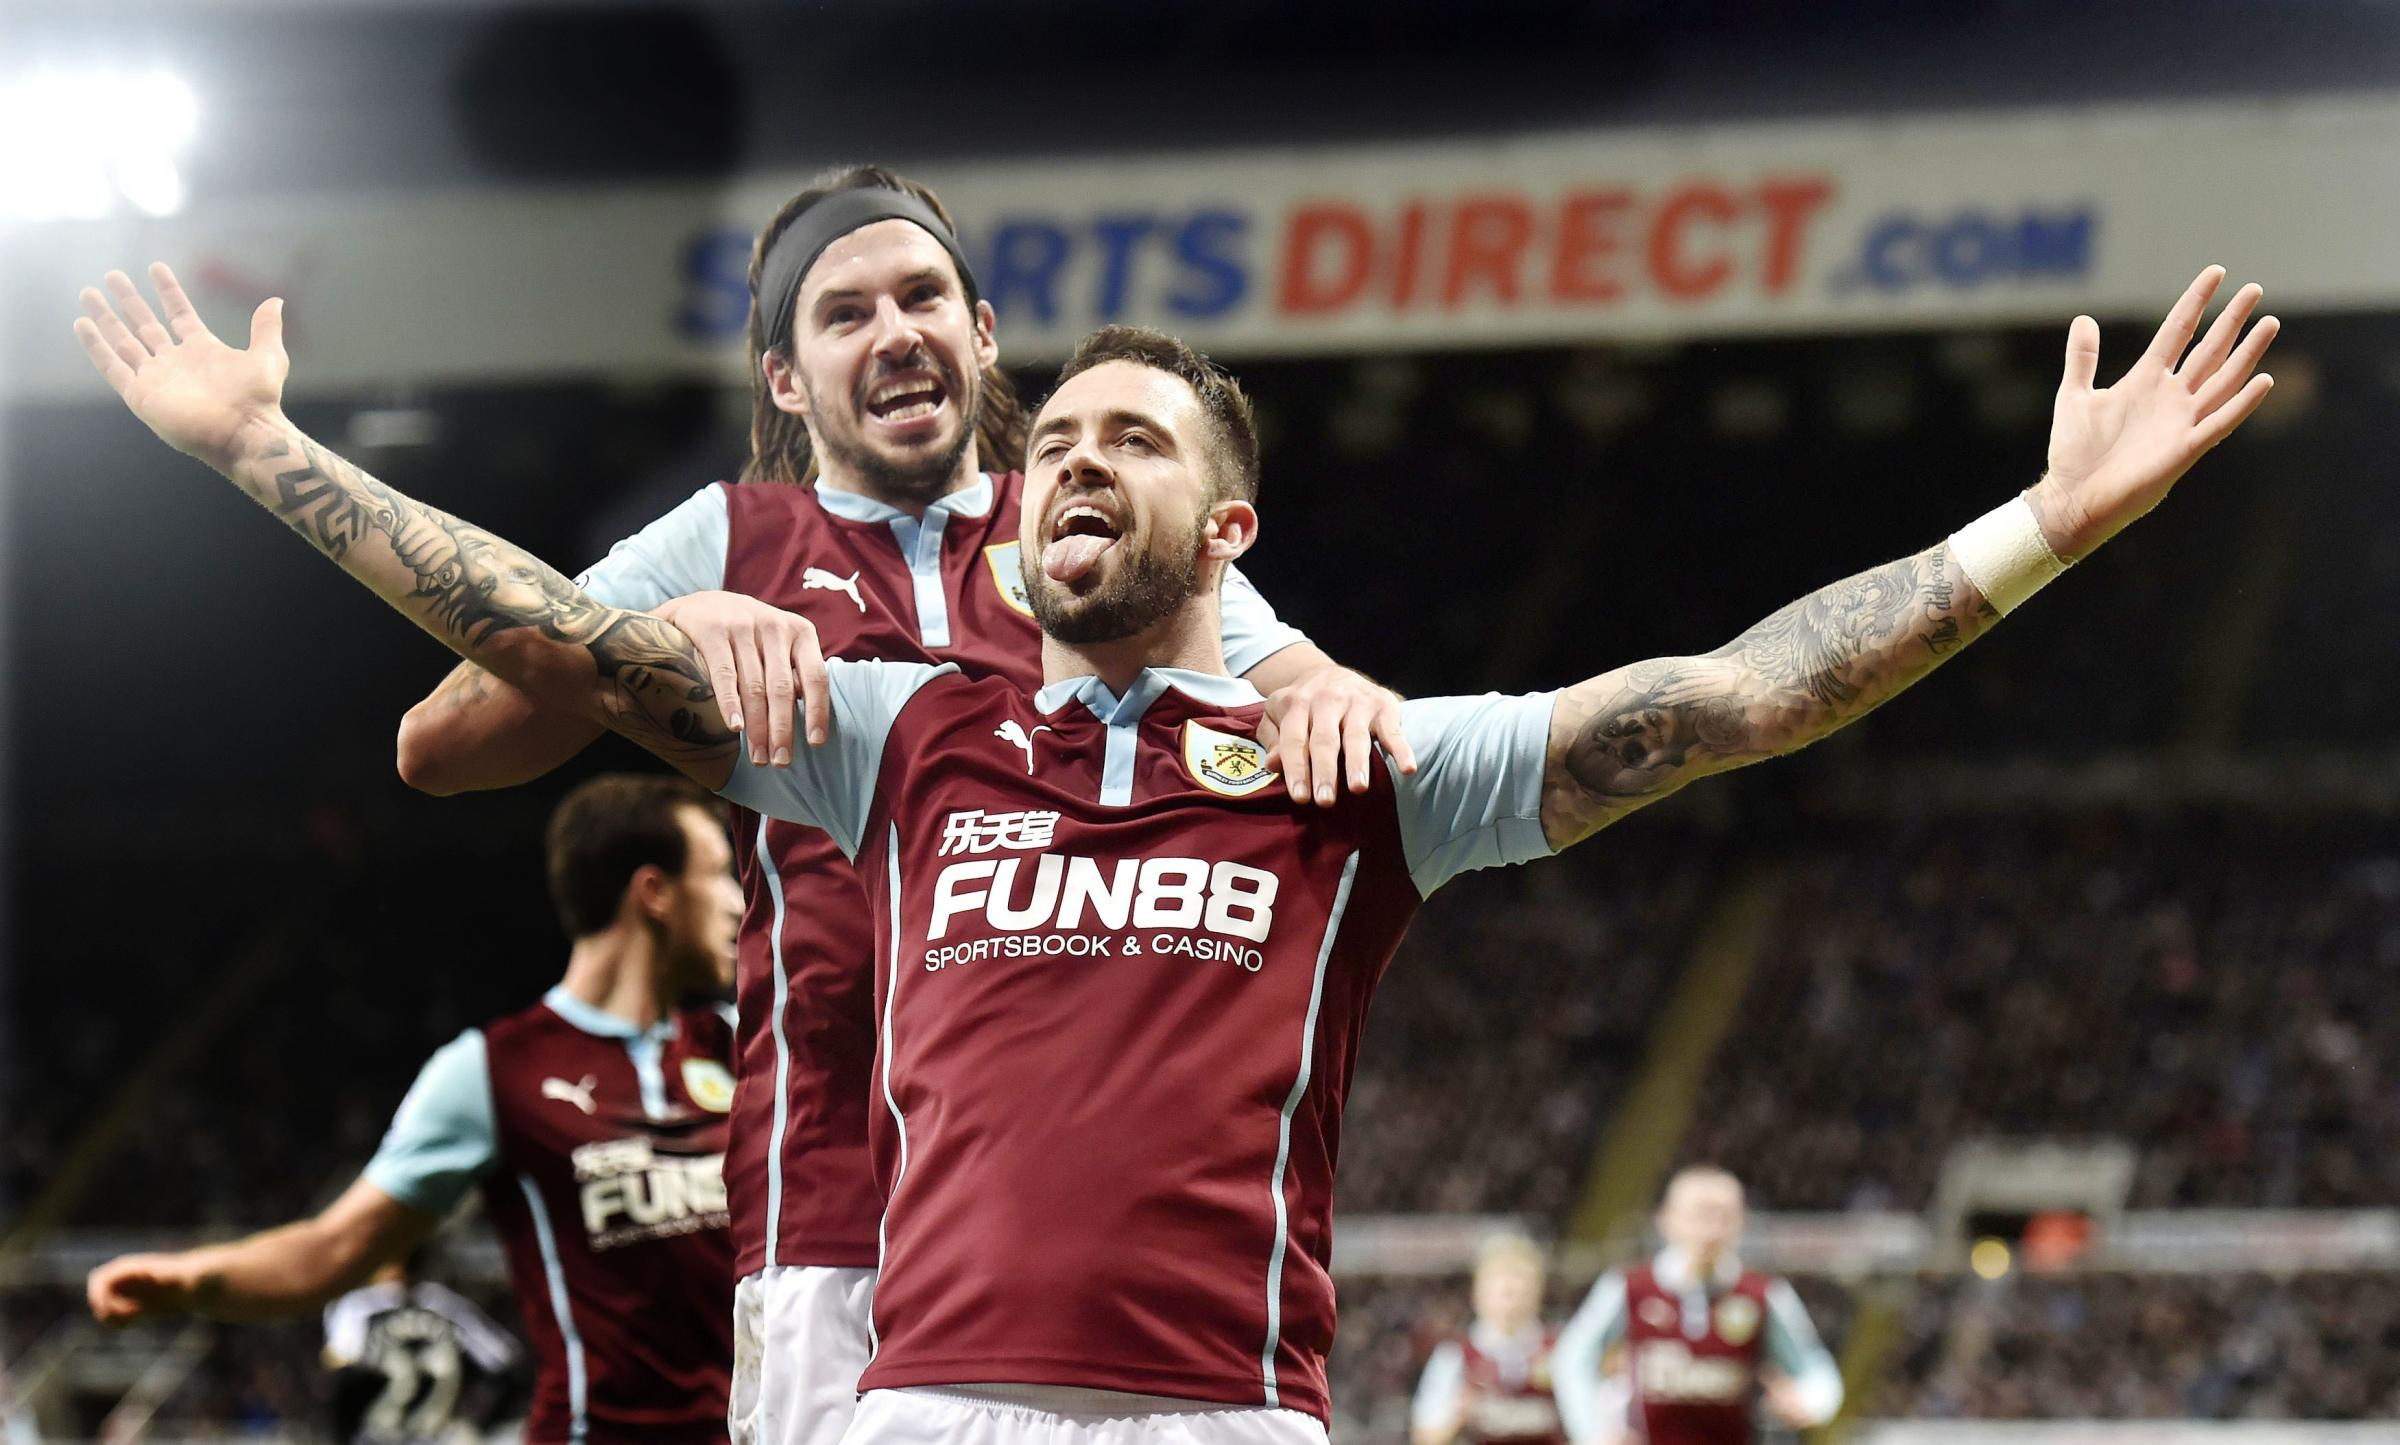 WANTED MAN: Burnley's Danny Ings, celebrating his goal against Newcastle, could soon be the subject of a bid from Tottenham Hotspur